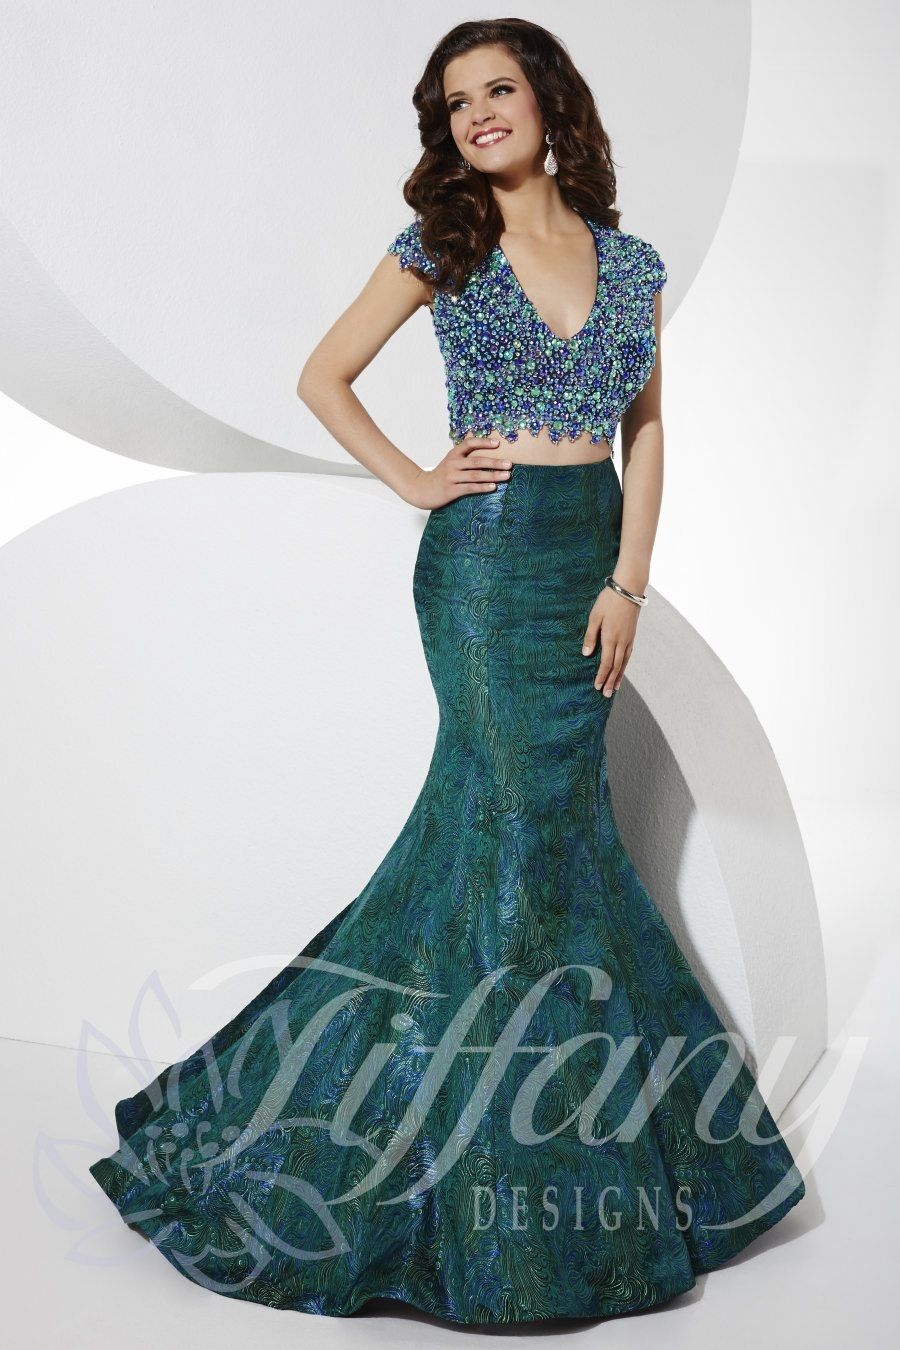 Tiffany designs prom dress long gown everythingpageants